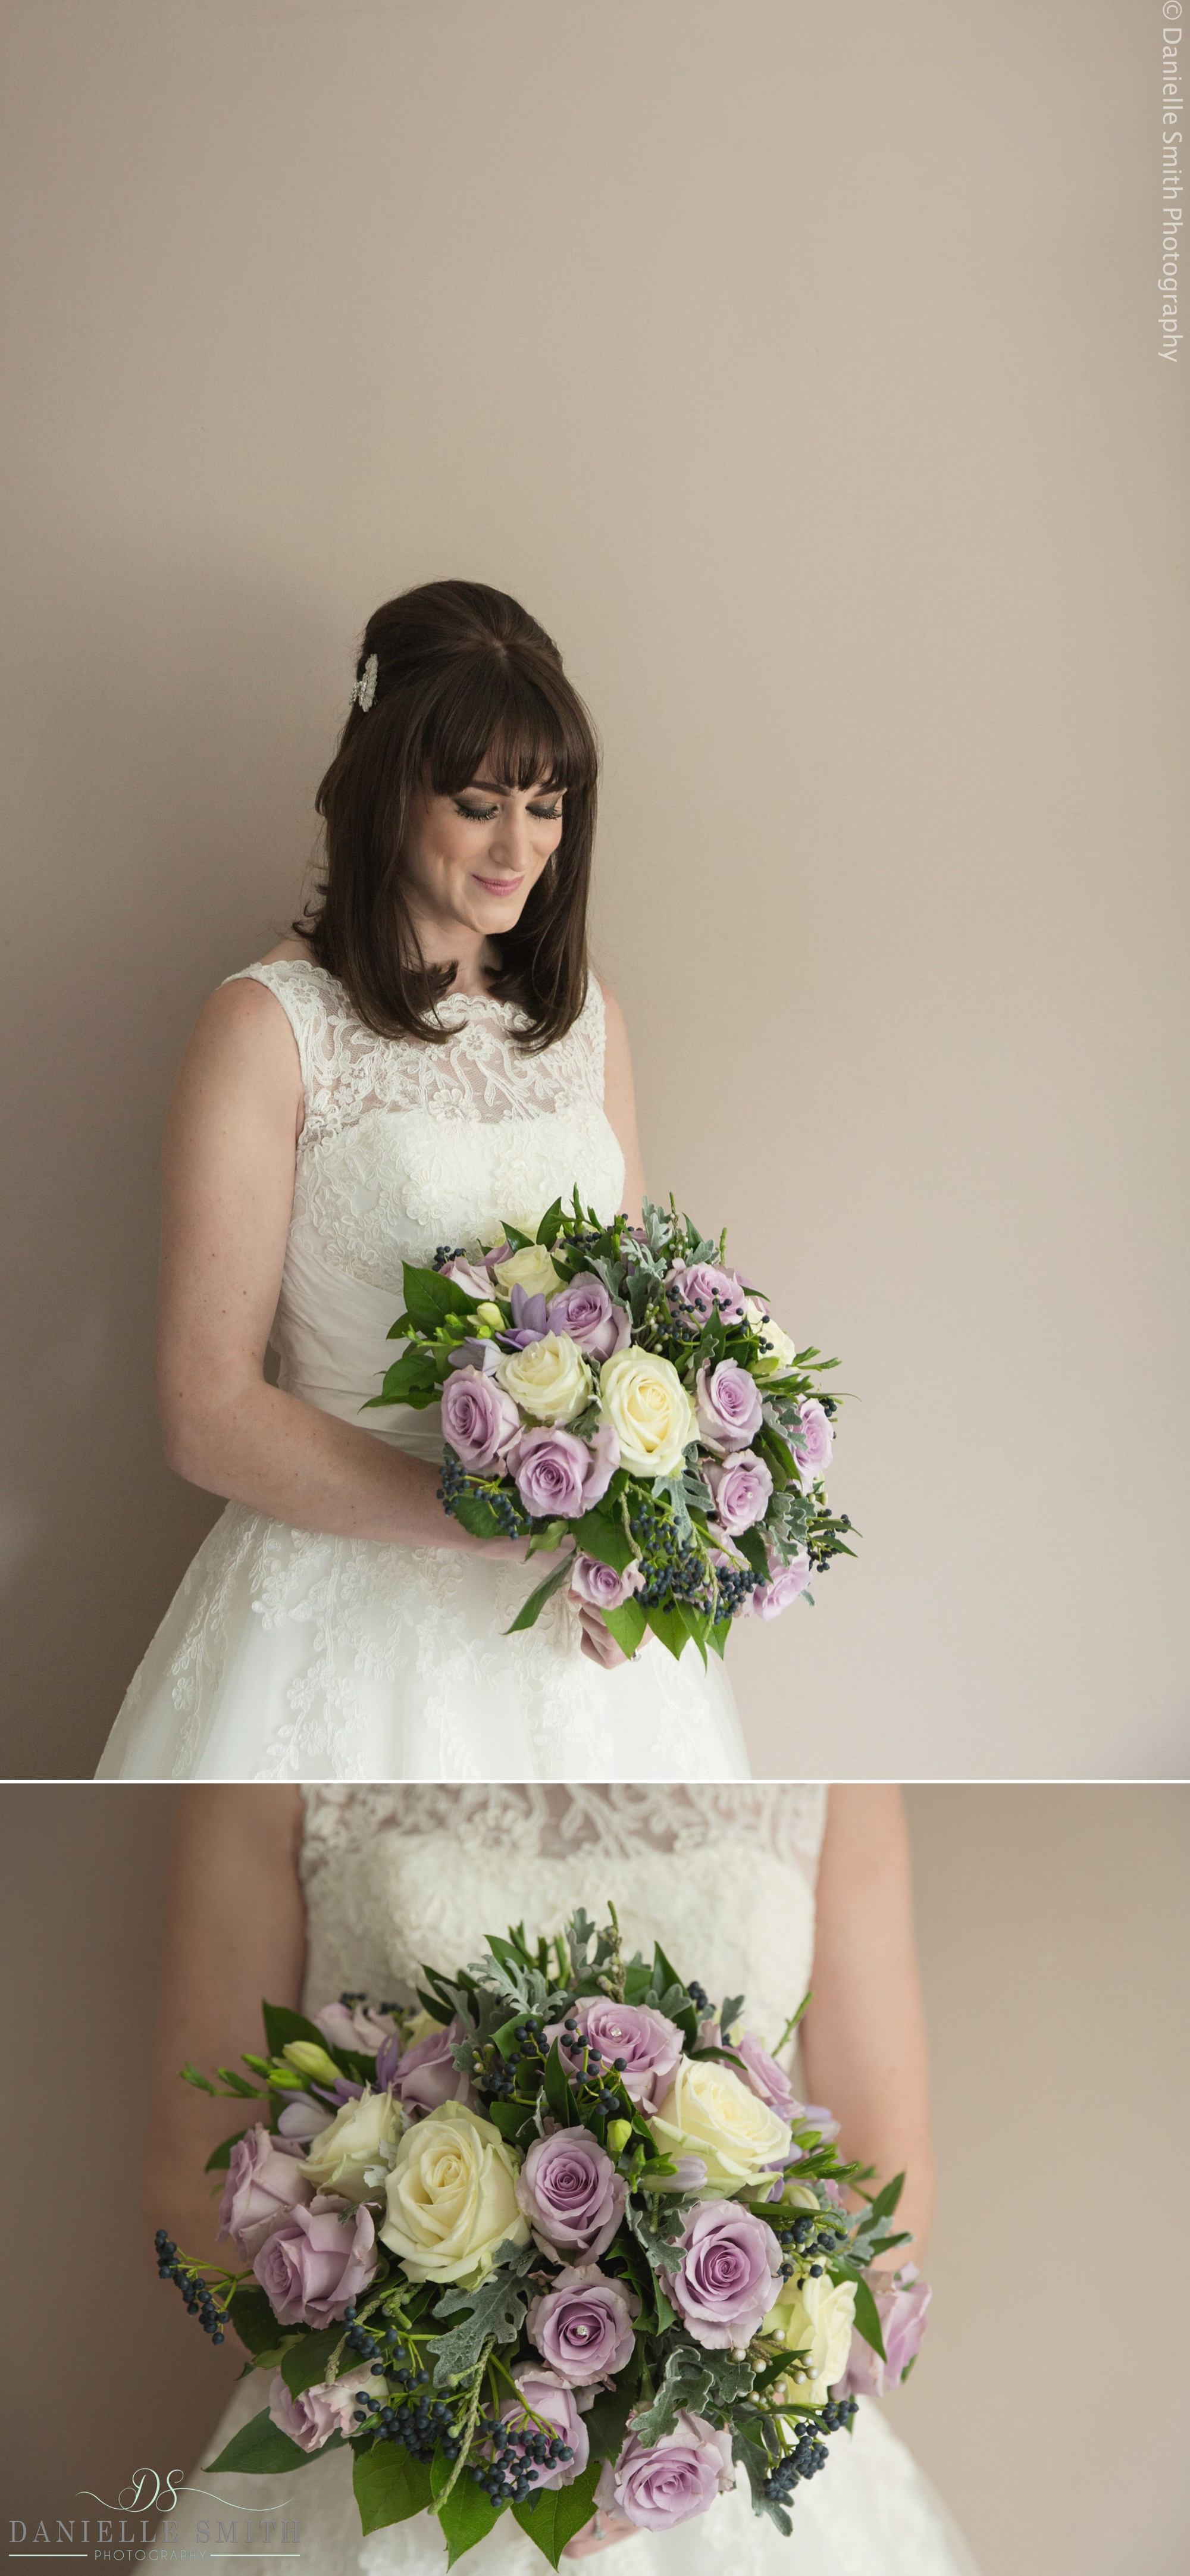 bride with ivory and violet rose bouquet - 1920s style wedding